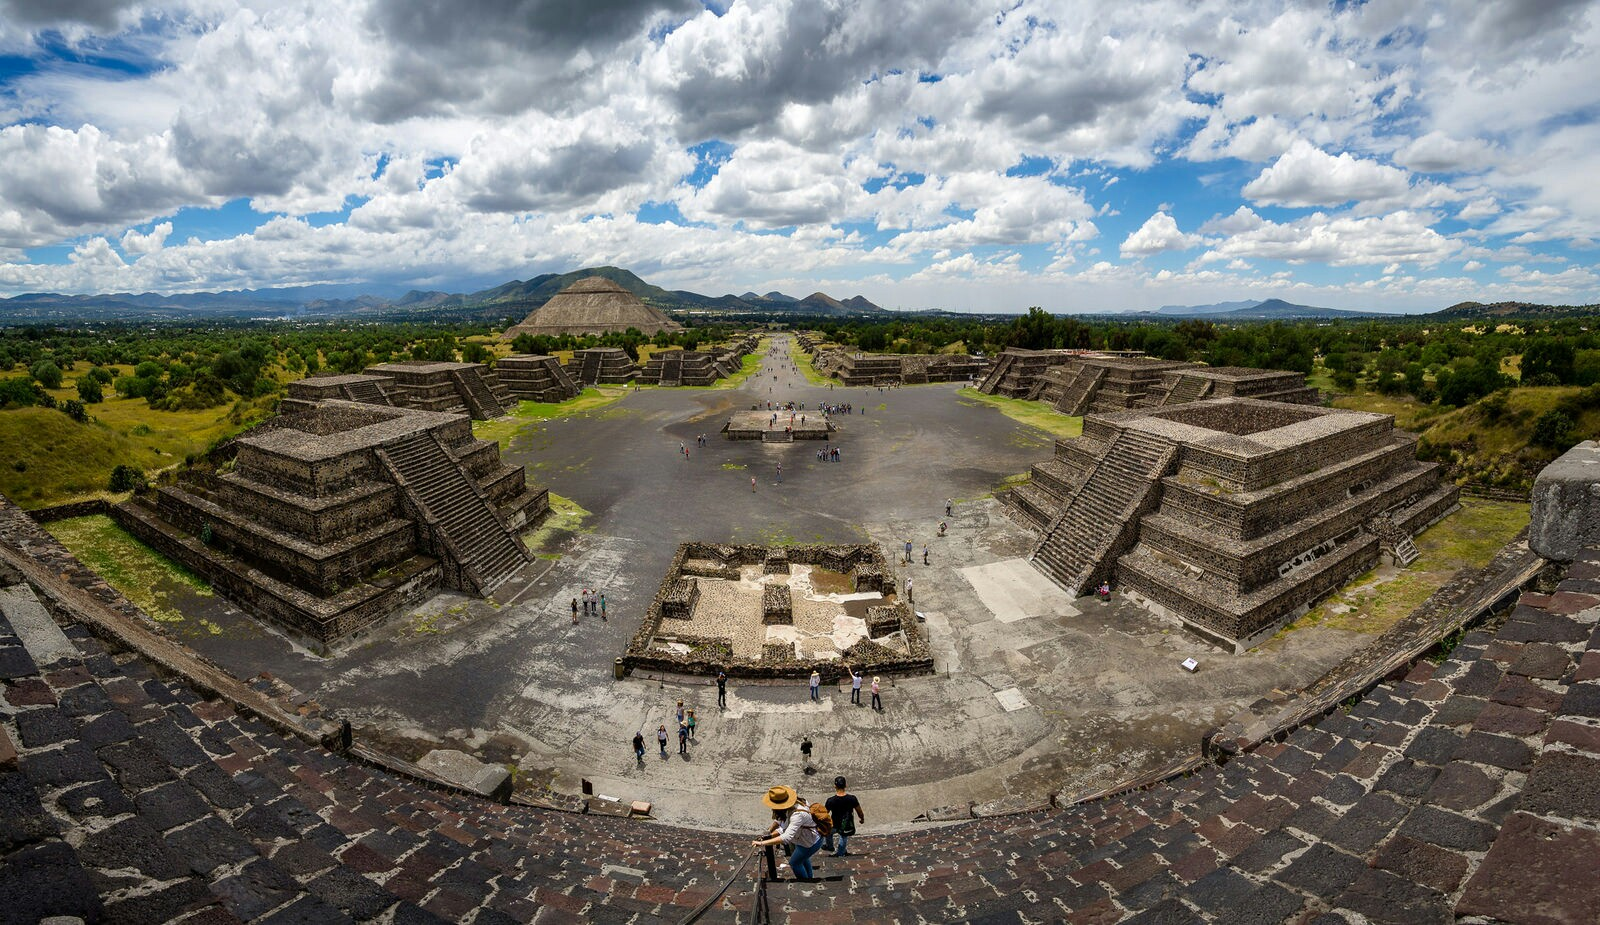 File:Panoramic view of Teotihuacan.jpg - Wikimedia Commons